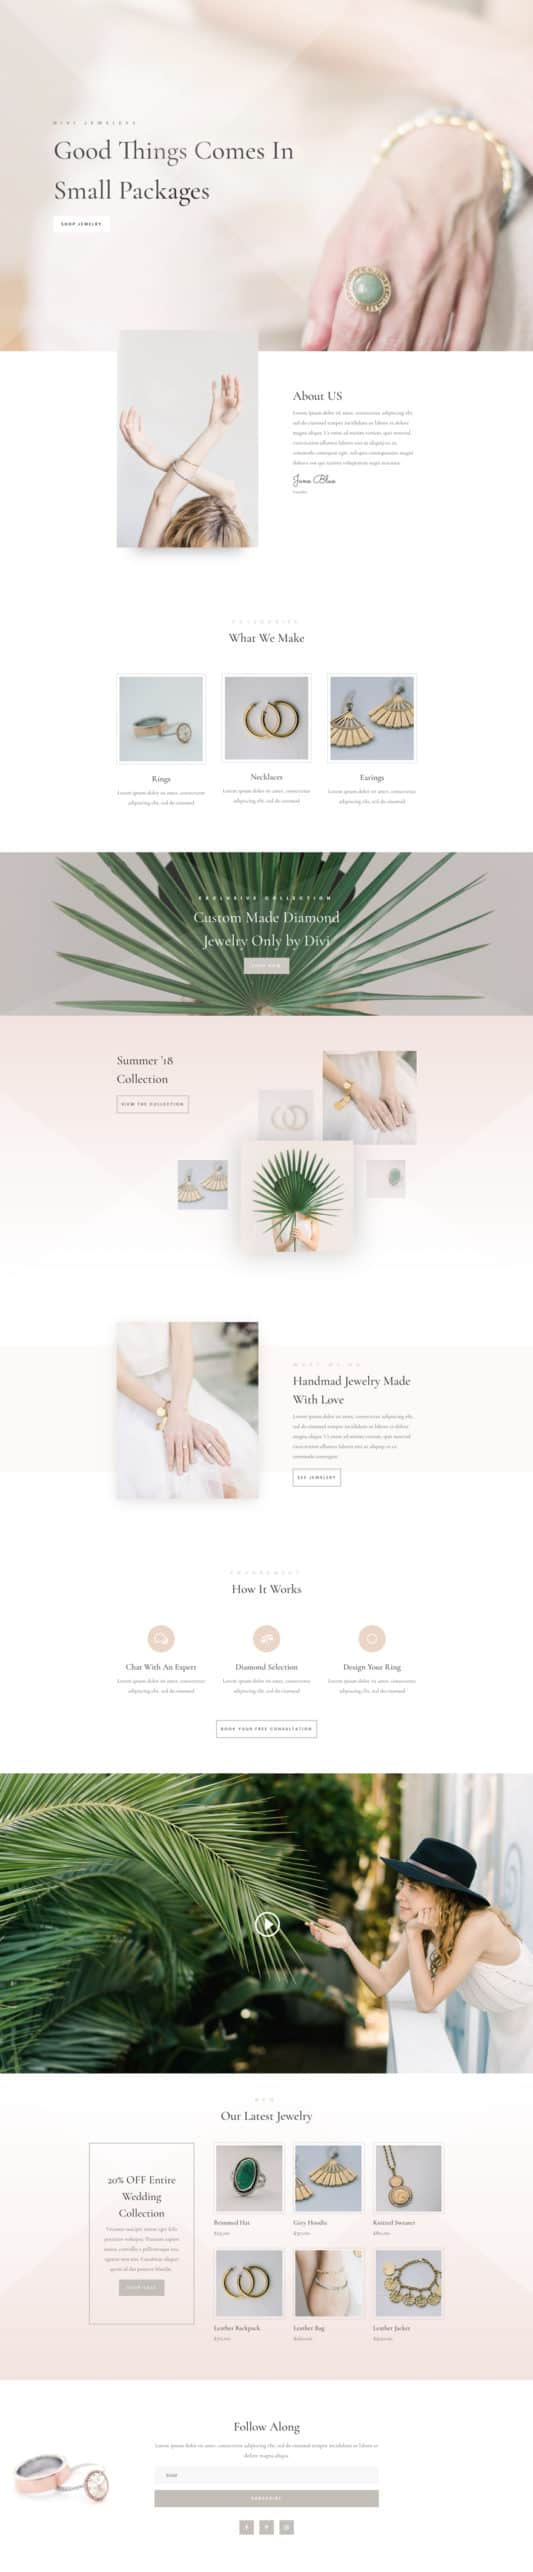 Jeweler Web Design 6